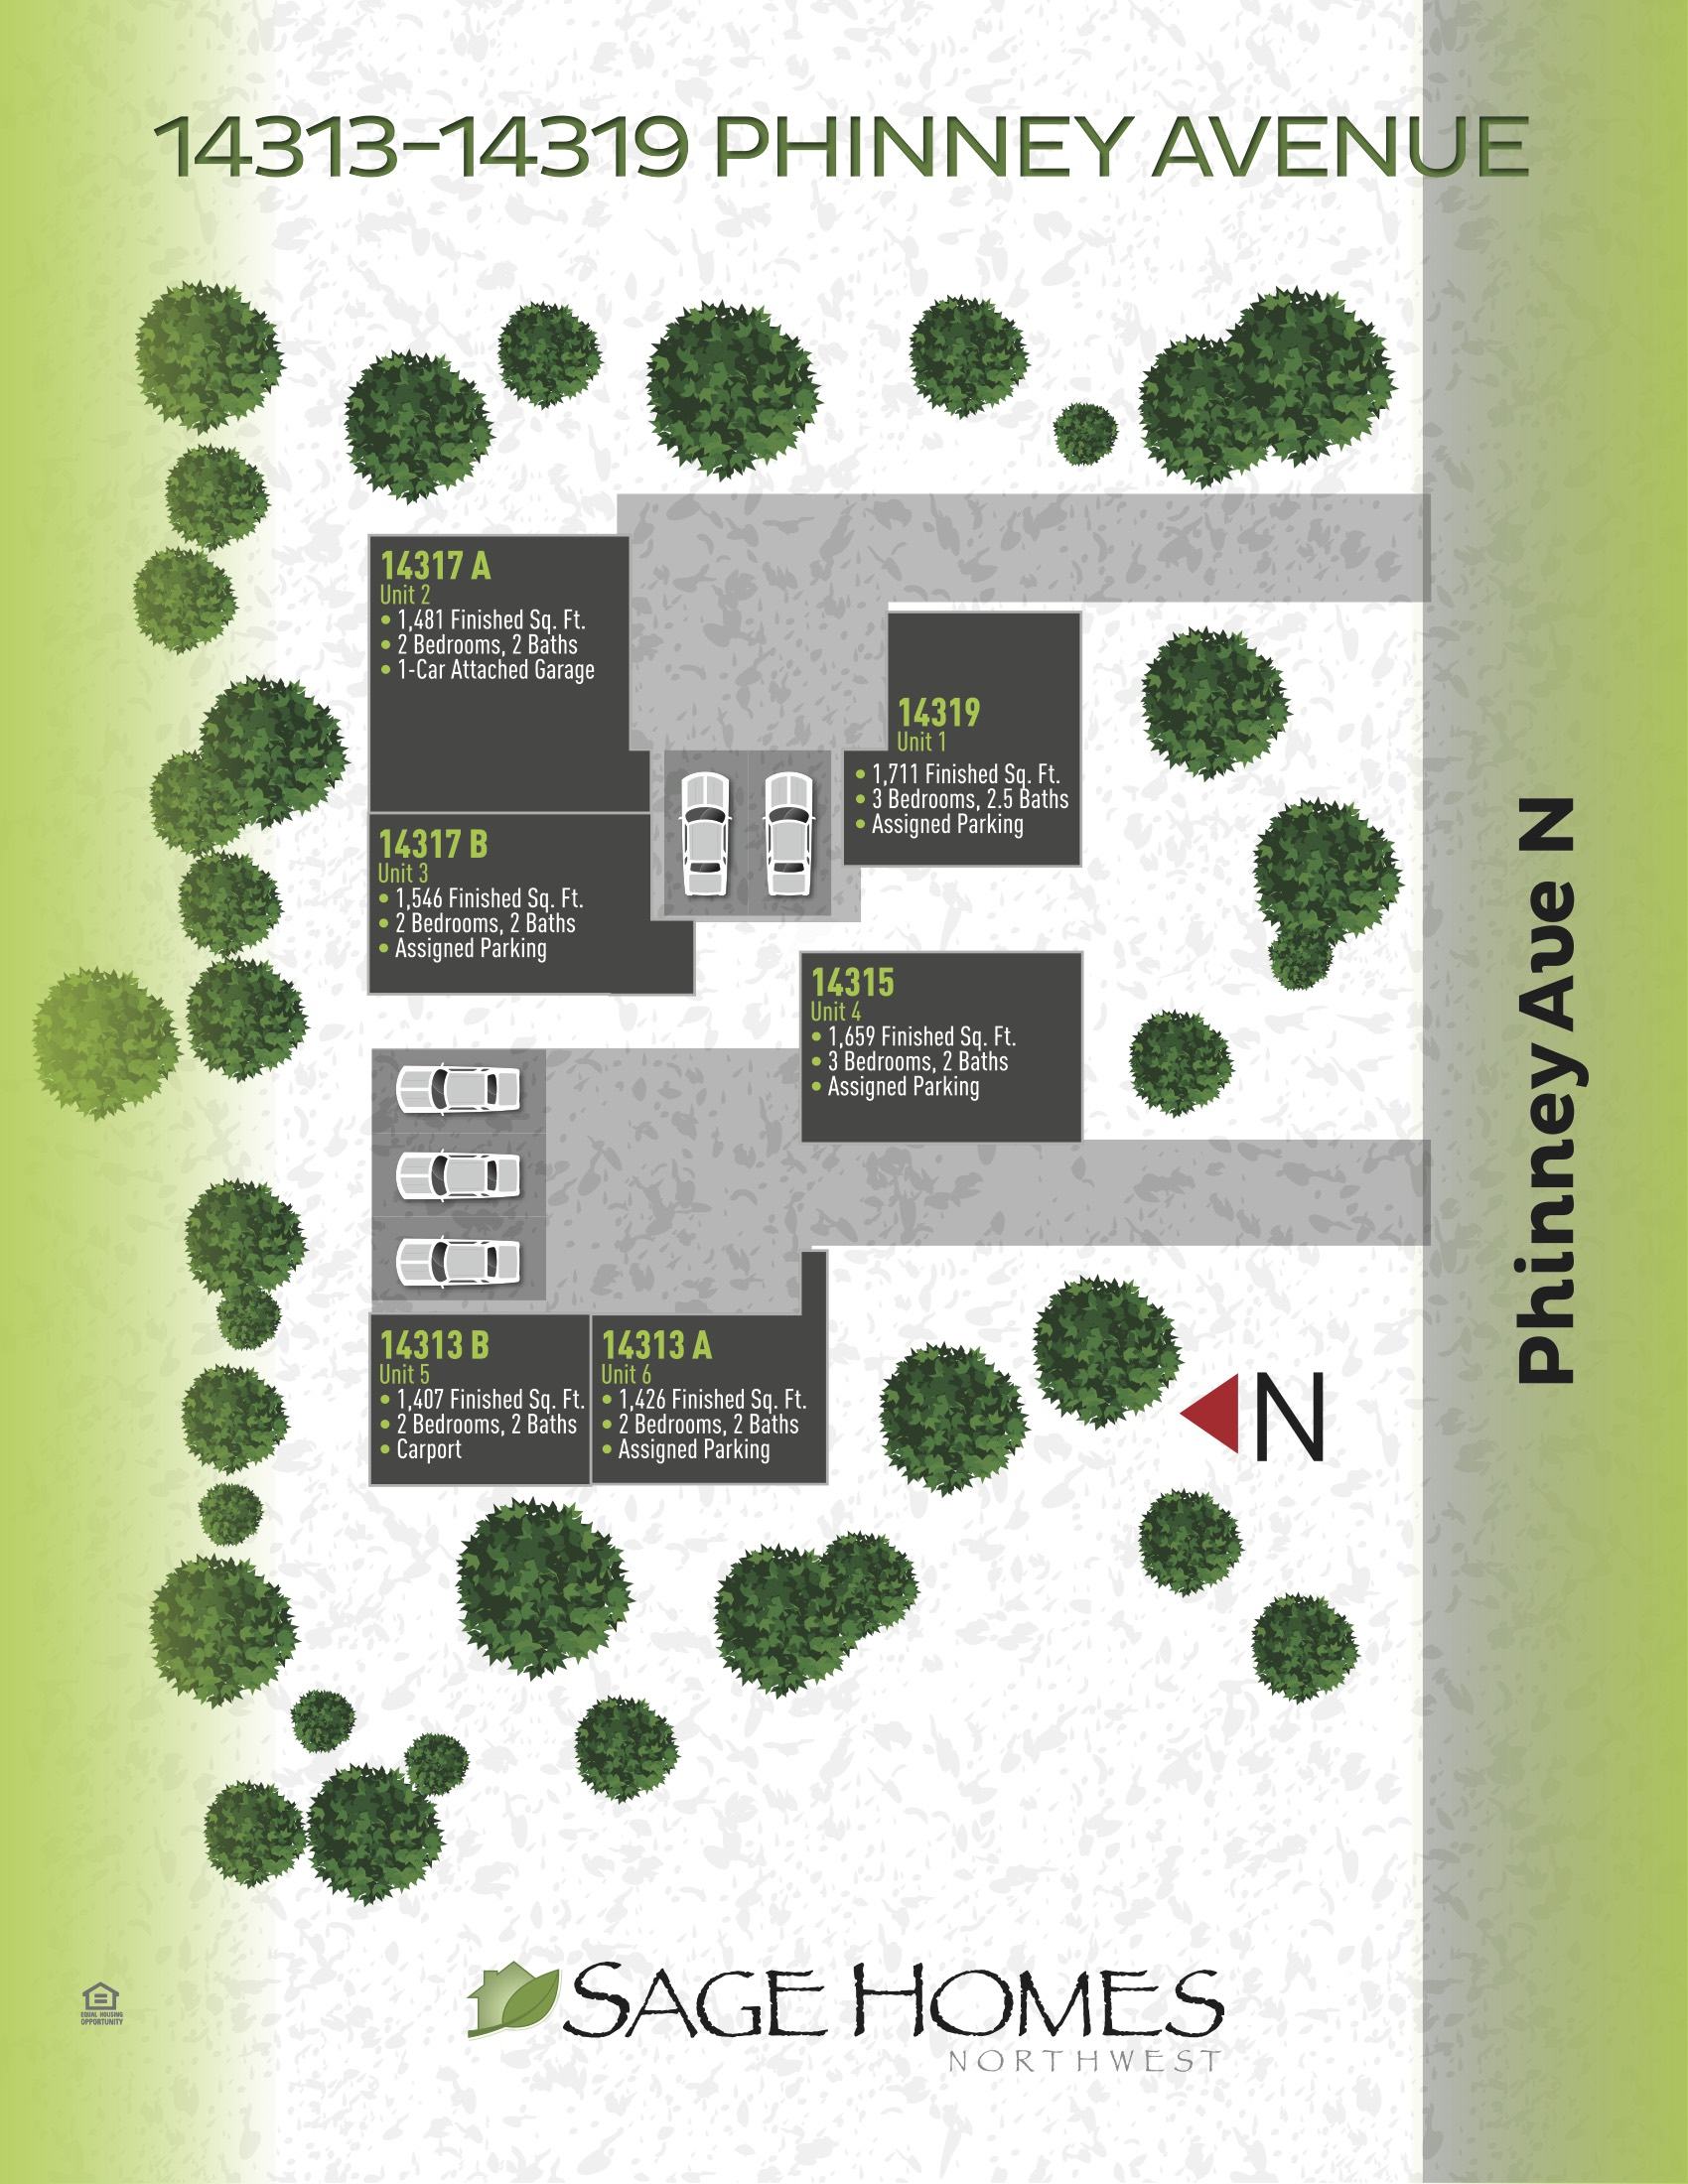 14315 Phinney Ave N - Greenwood Site Plan